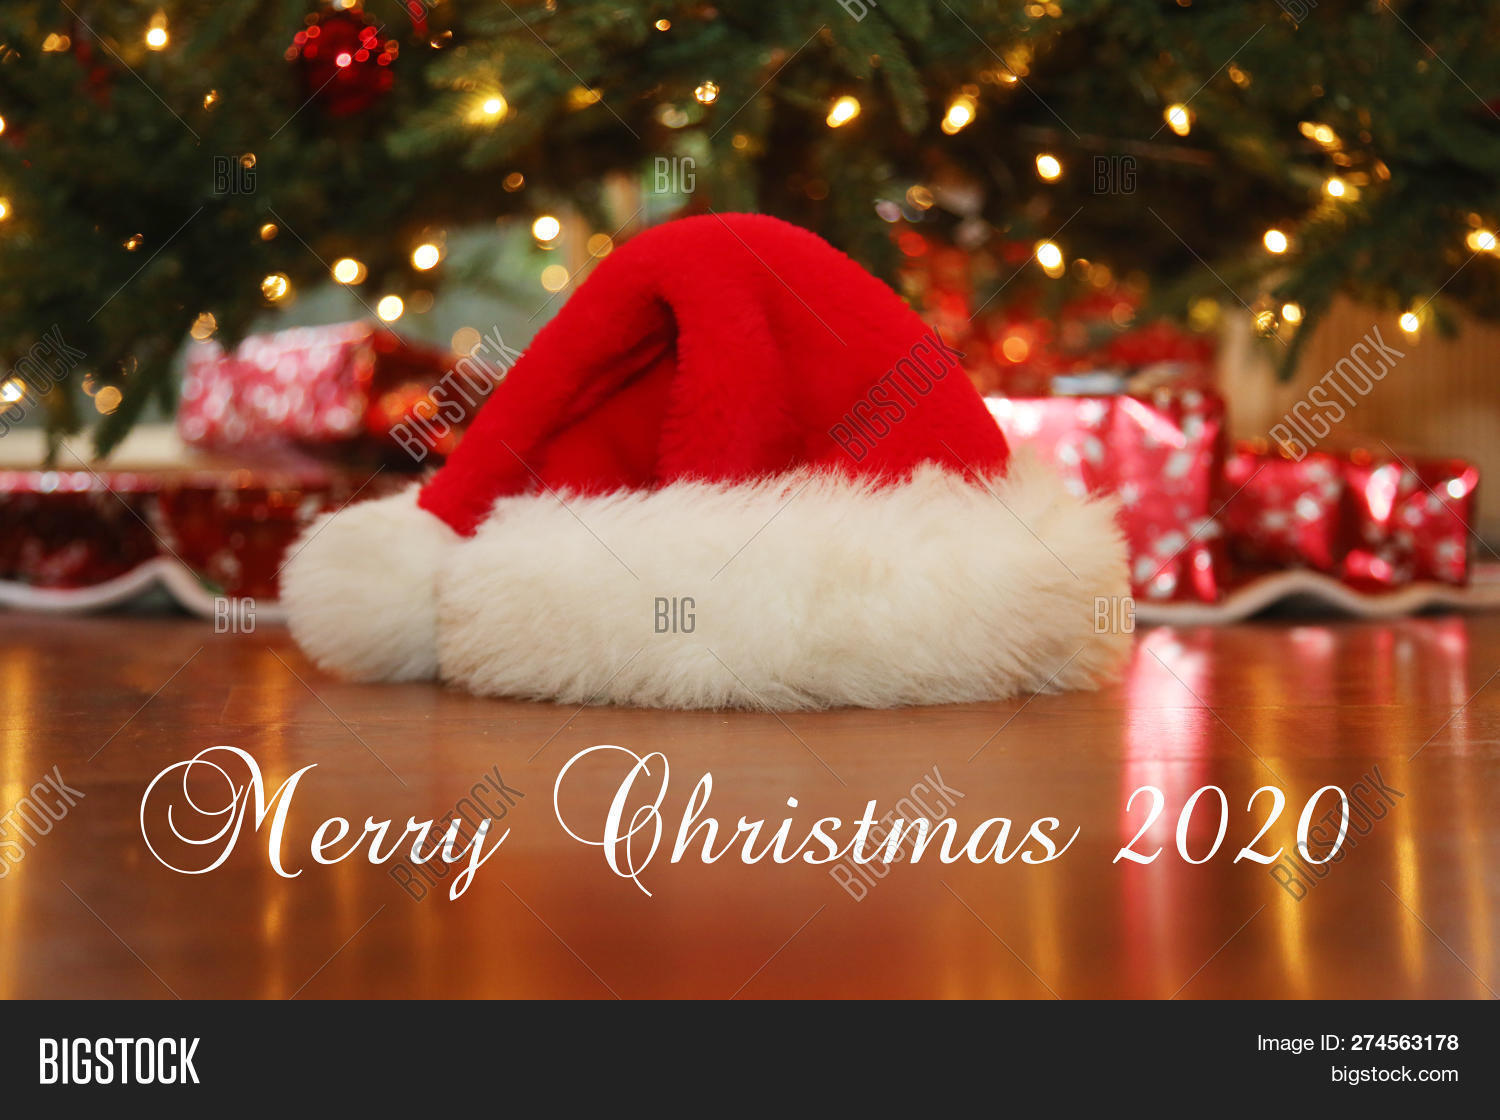 Christmas 2020.Christmas 2020 Santa Image Photo Free Trial Bigstock